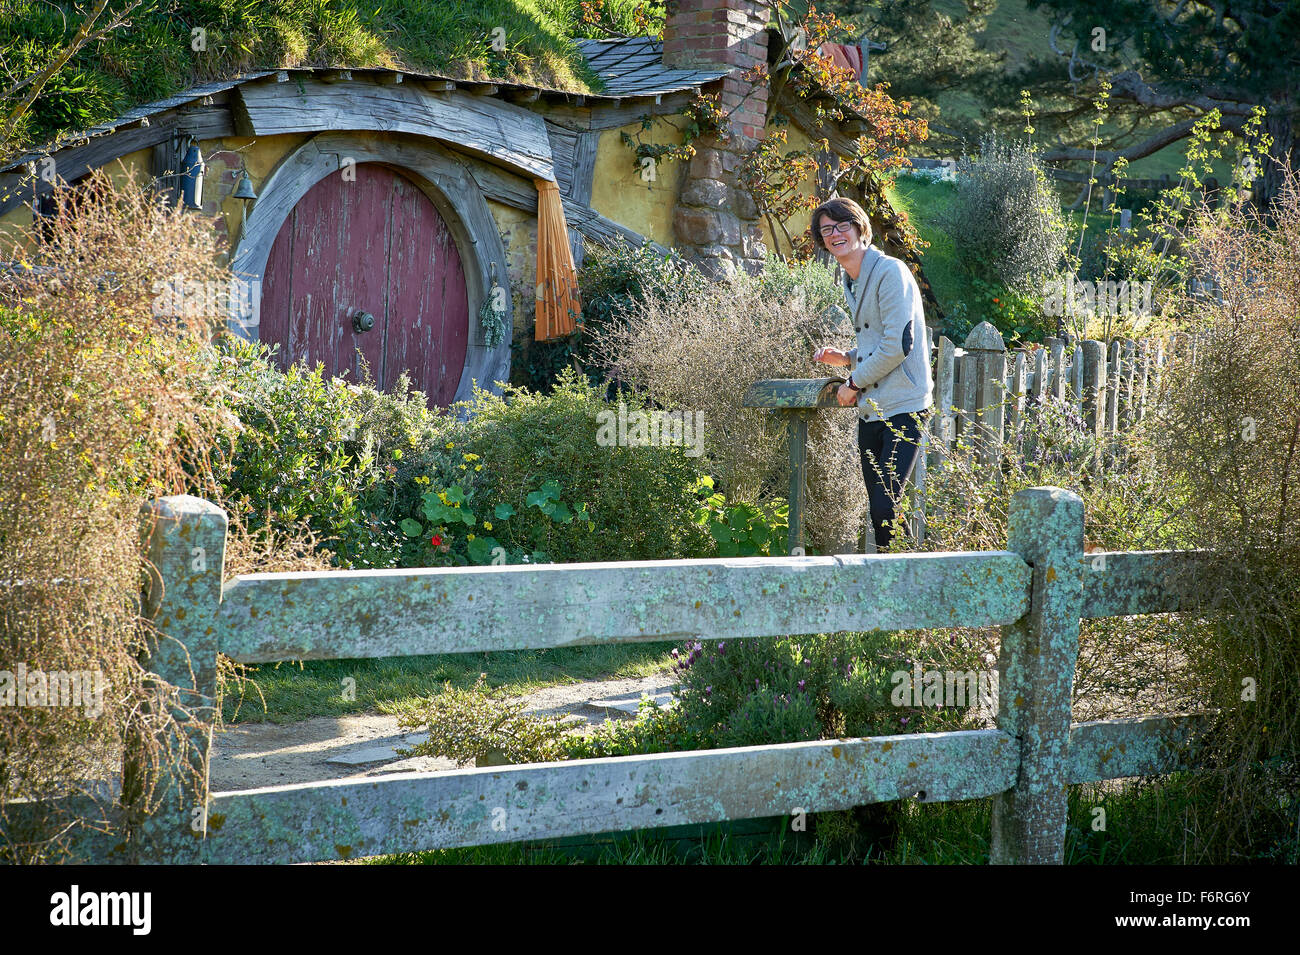 Teenager collecting mail from mailbox outside hobbit house. - Stock Image